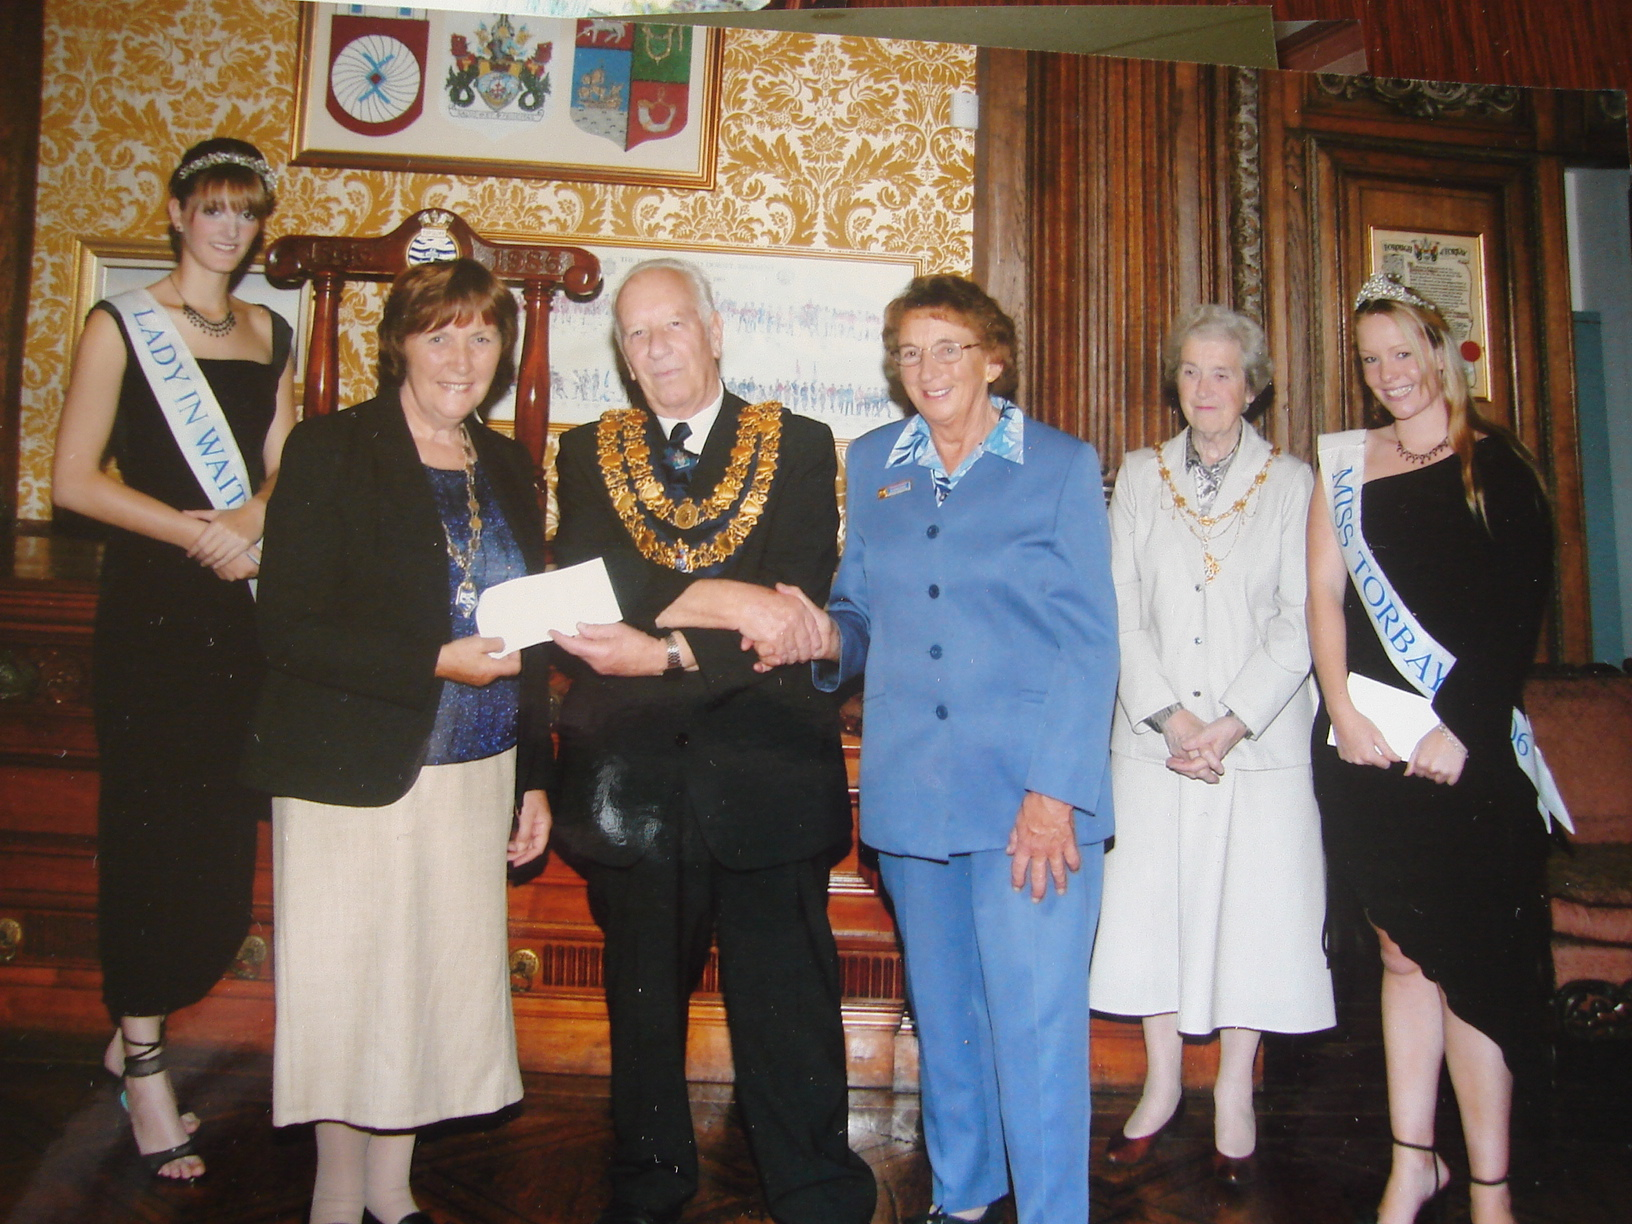 Mayor of Torbay presenting cheque for winning entry in local carnival